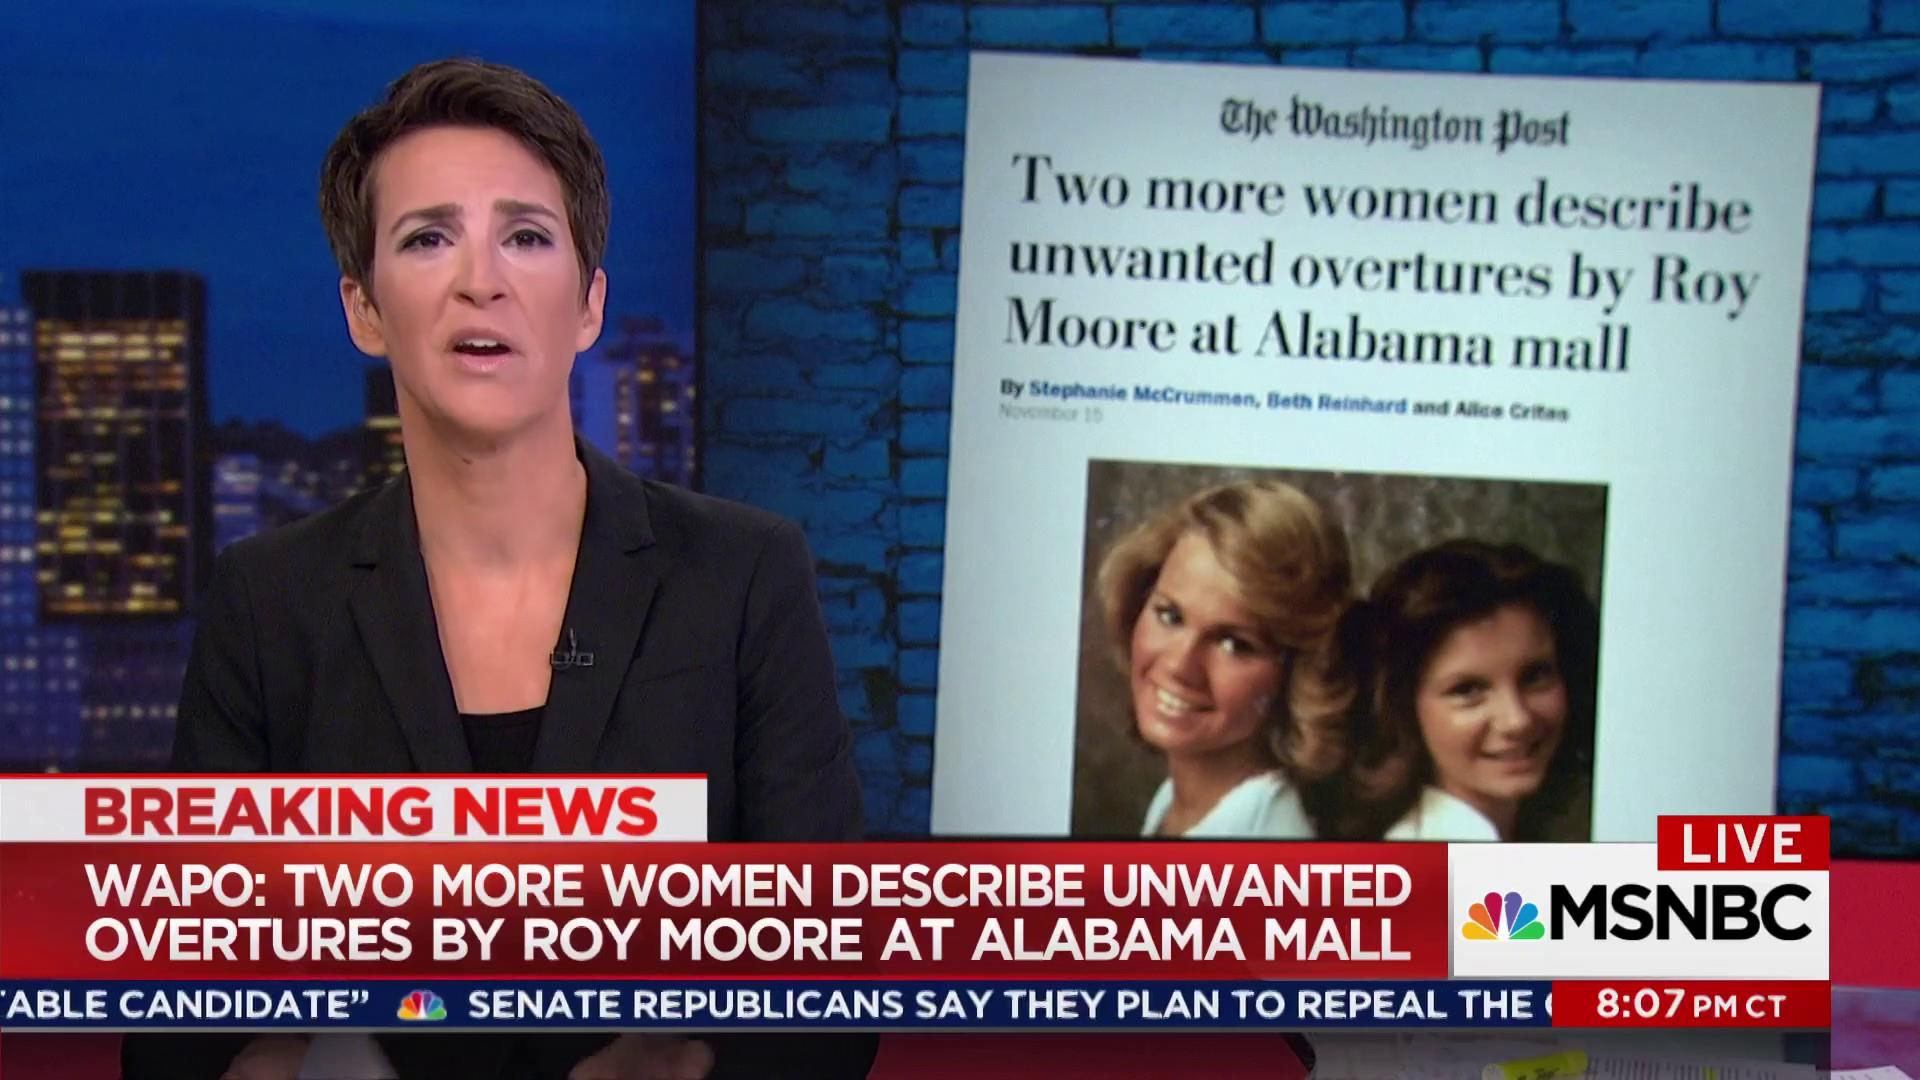 More women report lurid Roy Moore behavior